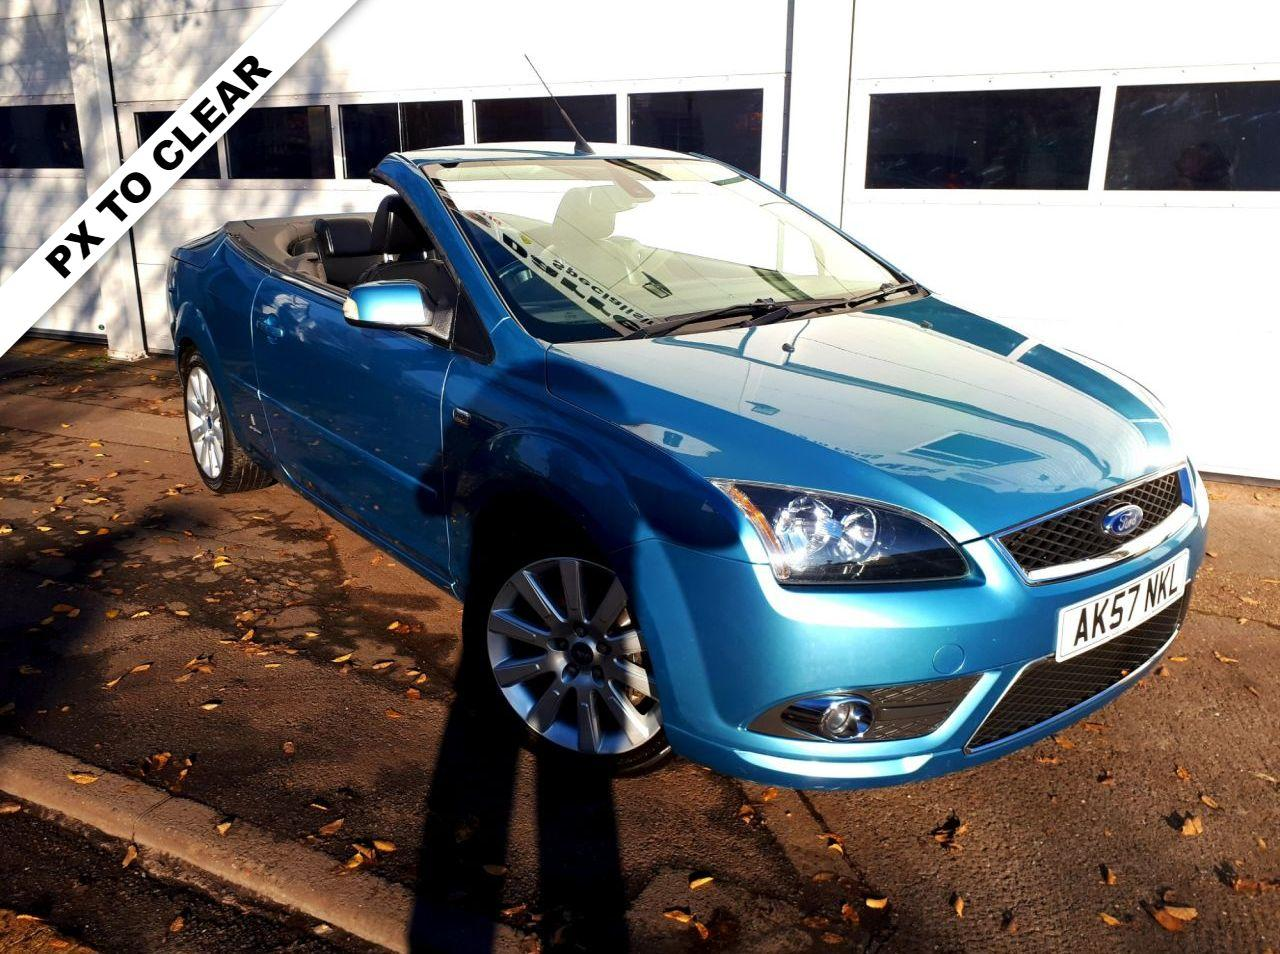 Ford Focus Cc 2.0 TDCI CC3 2d CONVERTIBLE 135 BHP. ONLY 62,000 MILES Convertible Diesel BLUE